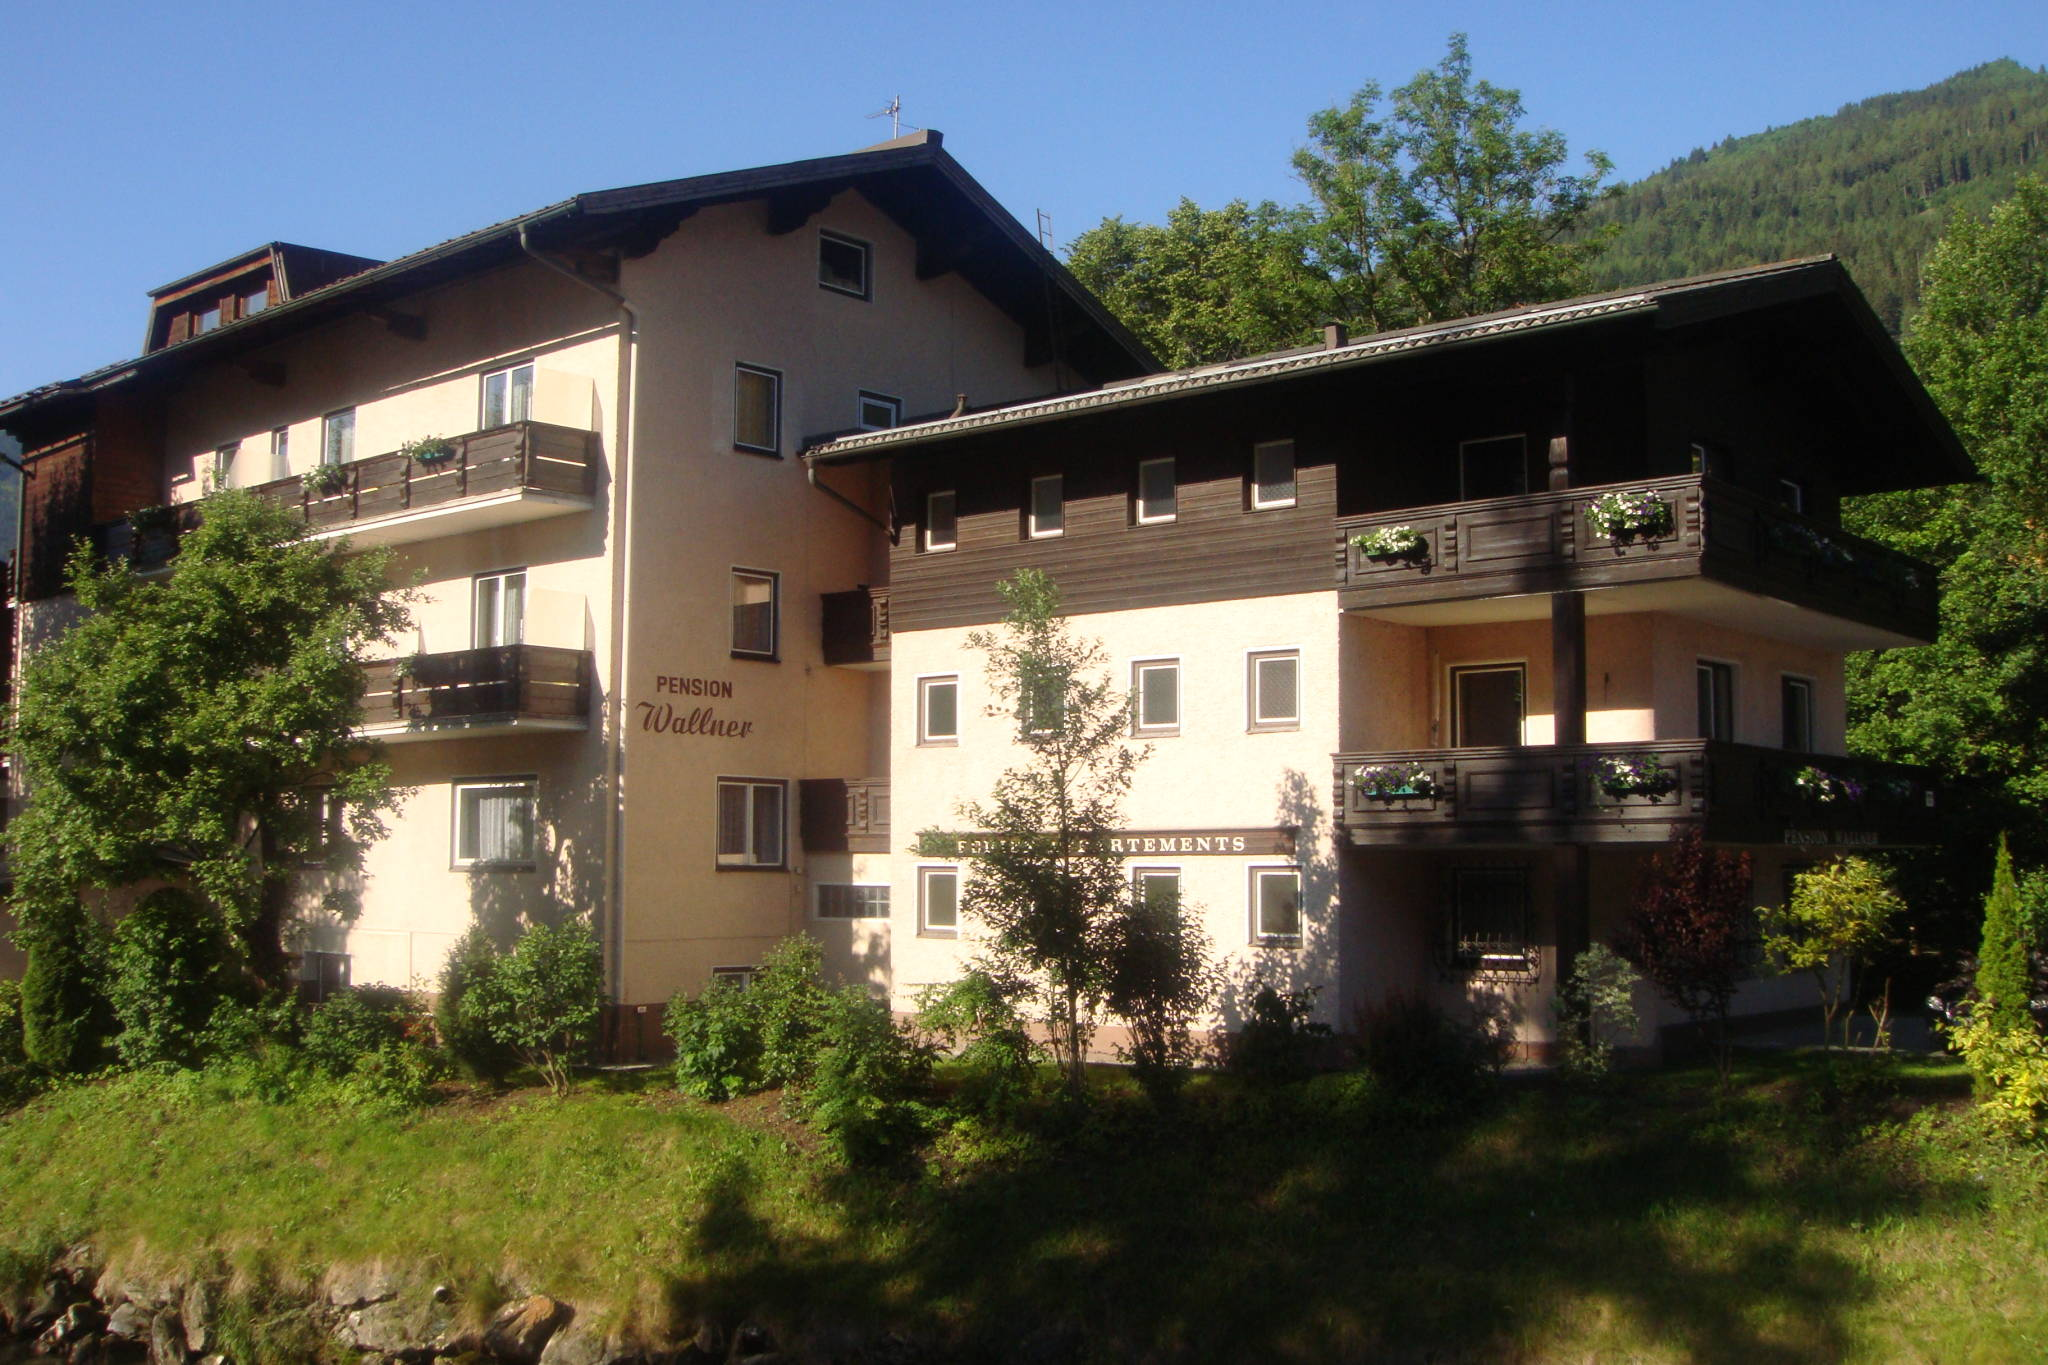 Pension Wallner Bad Hofgastein